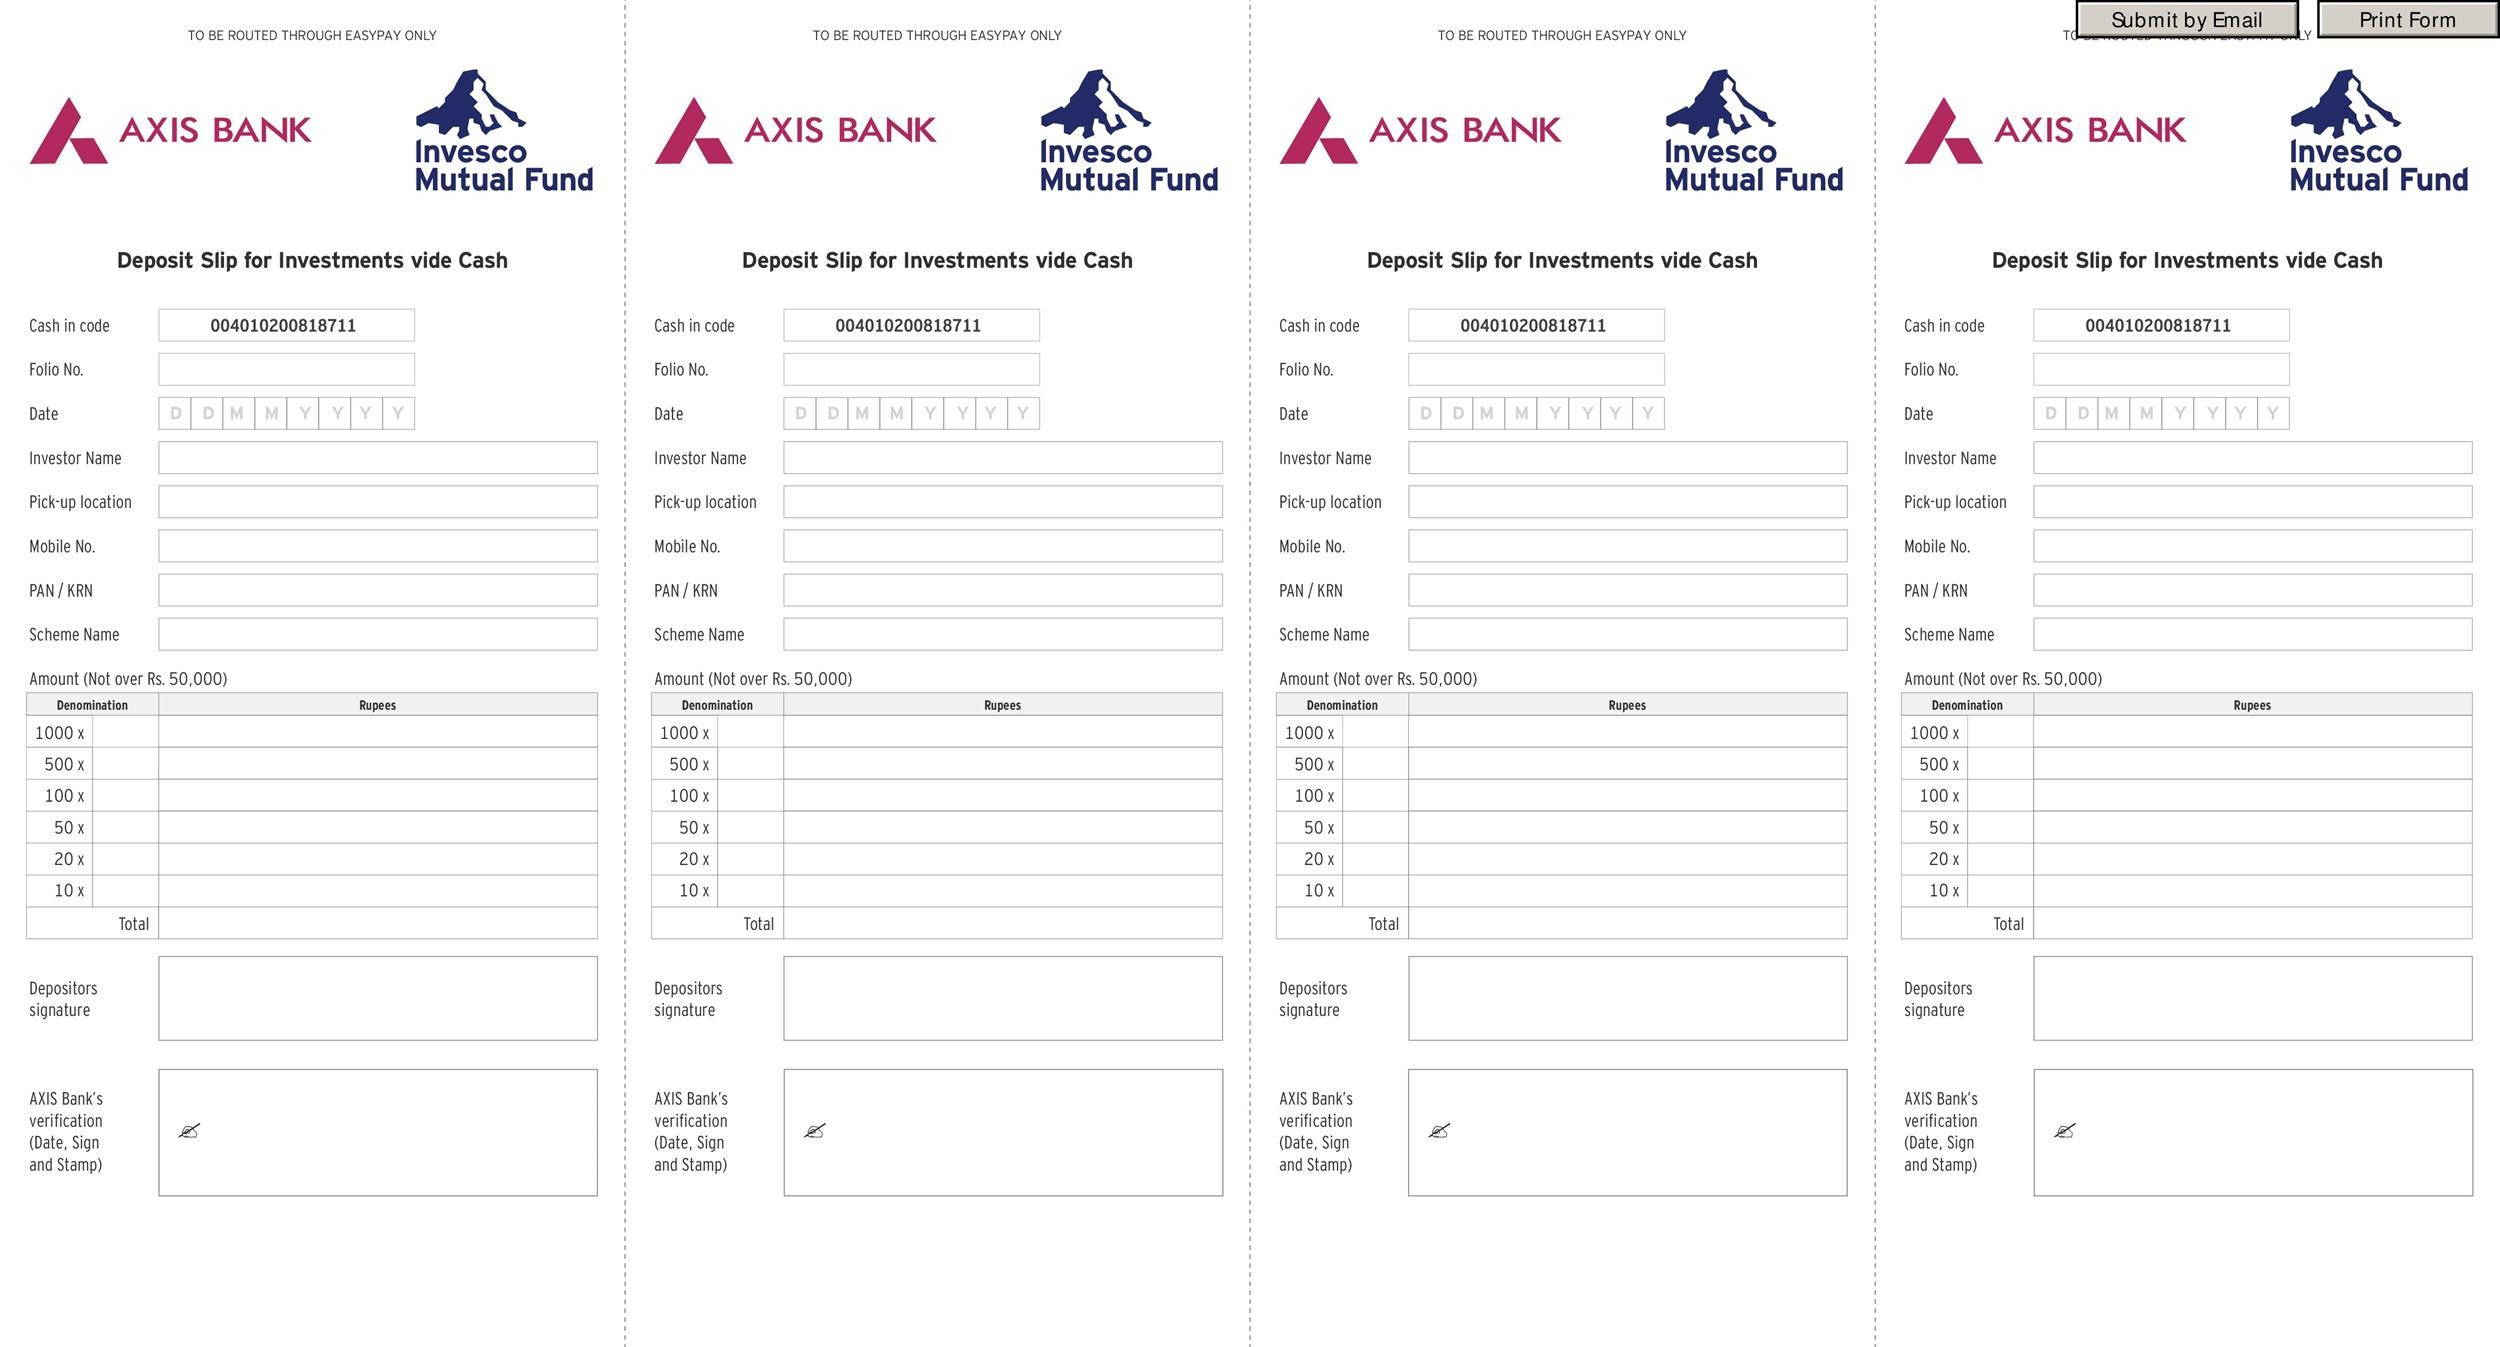 37 Bank Deposit Slip Templates  Examples - Template Lab